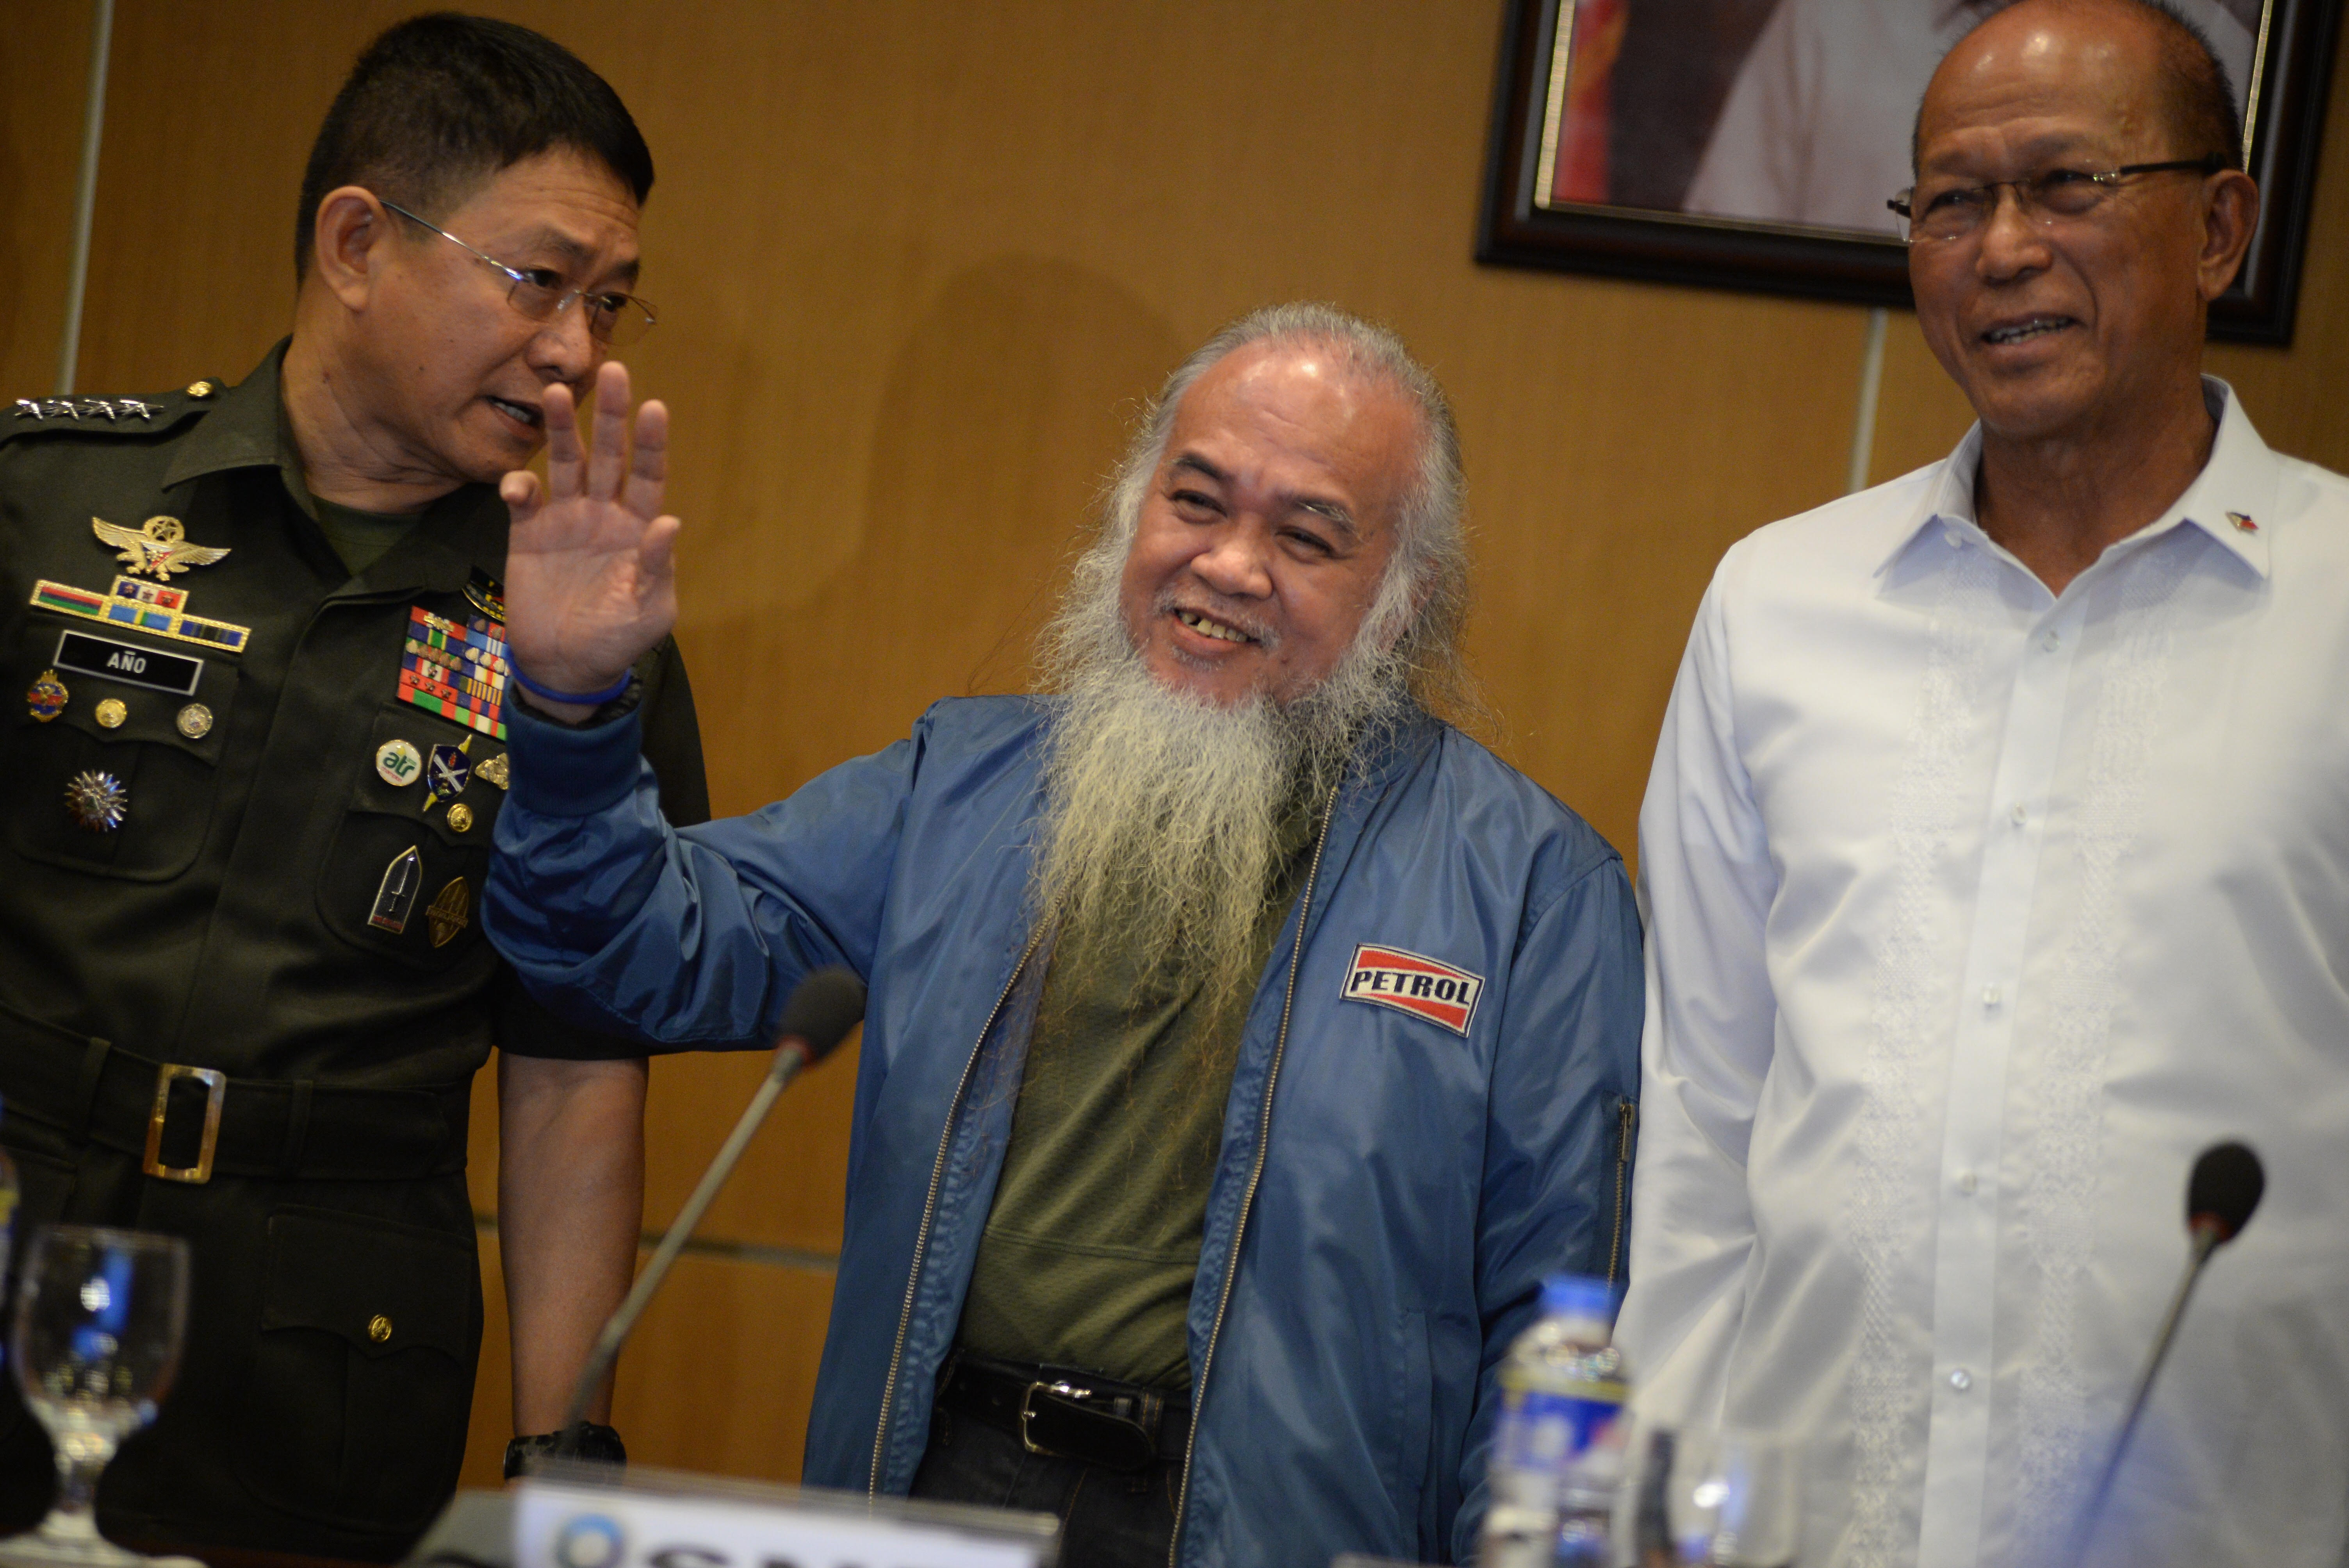 NOW FREE. Former Maute Group hostage Father Teresito 'Chito' Soganub appears in a press conference on September 18, 2017, after 117 days in captivity. Photo by Maria Tan/Rappler